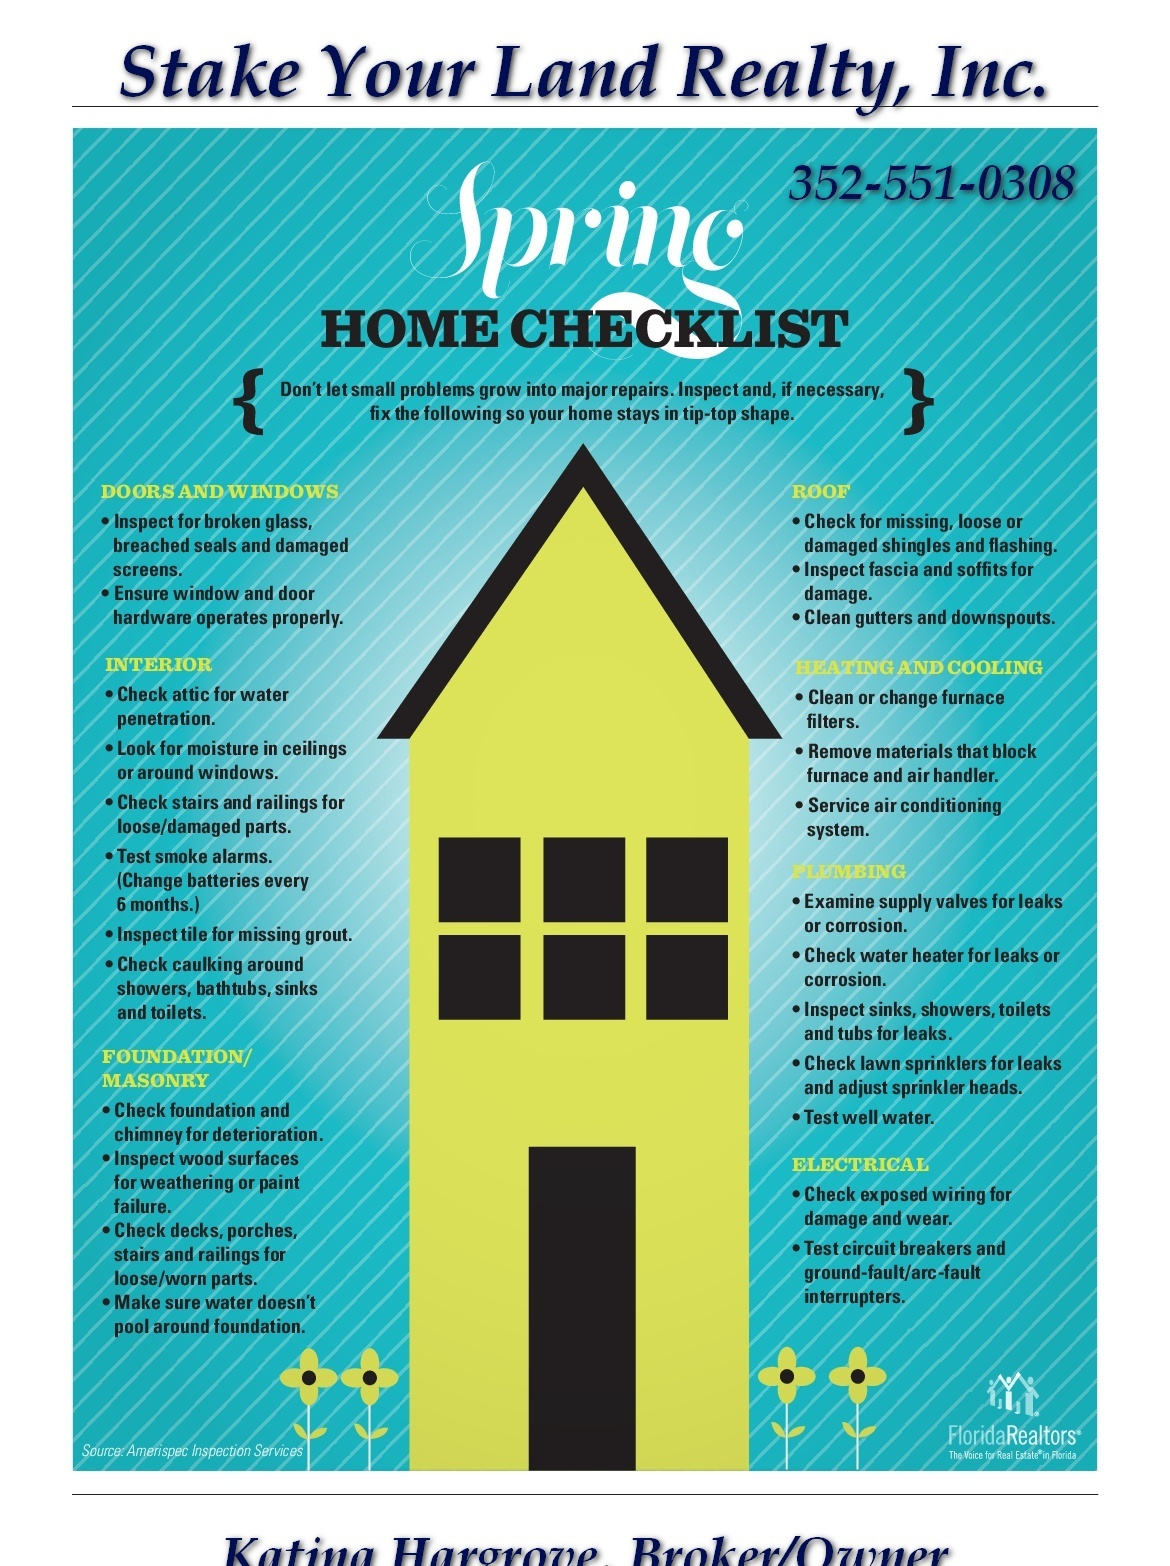 Spring Home Check List Wiring Materials